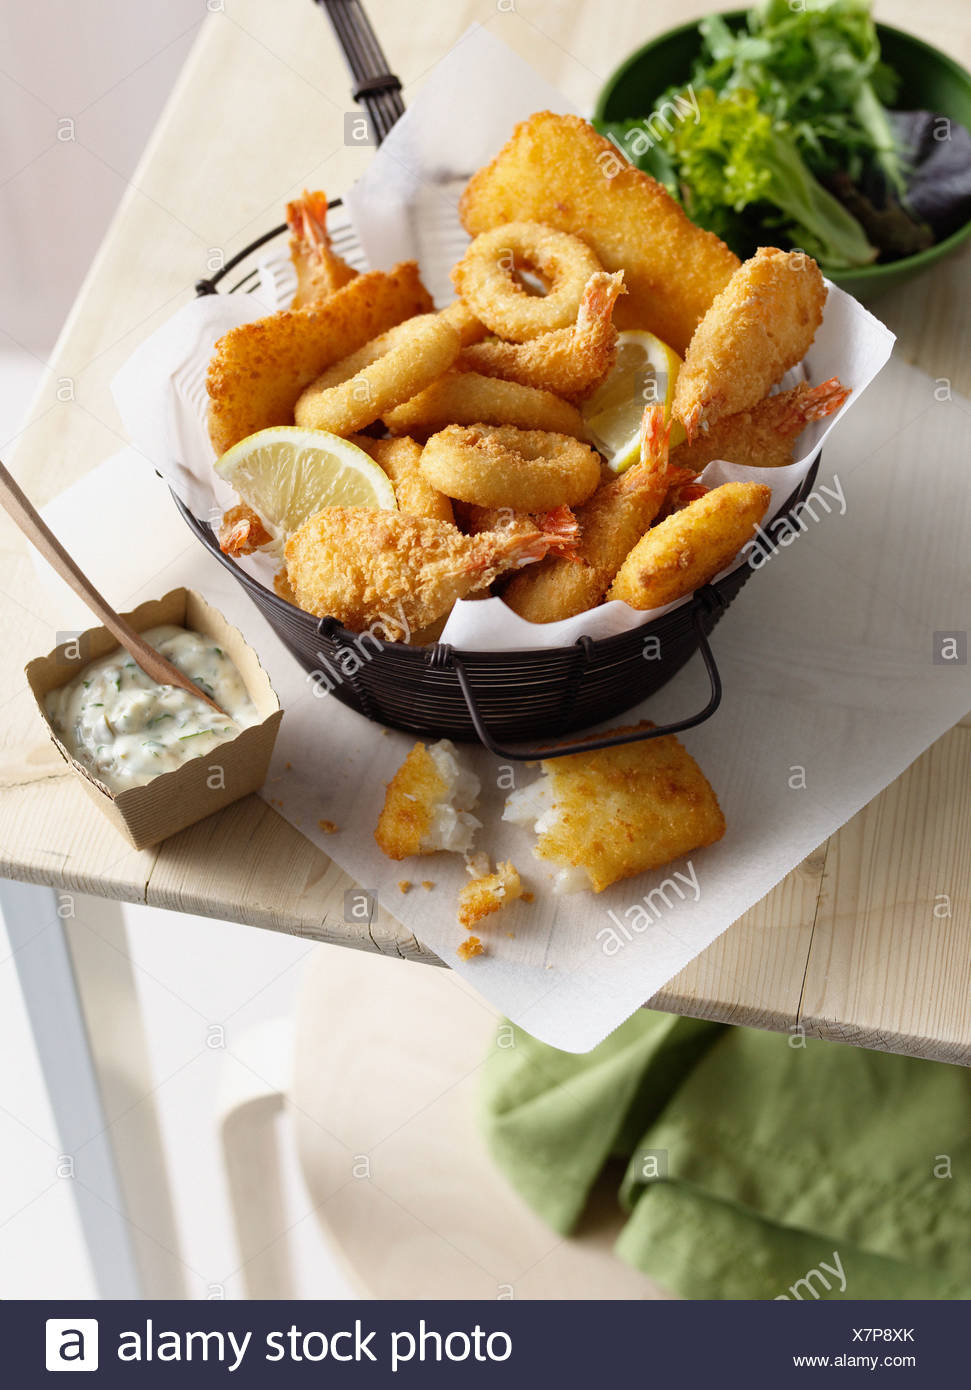 Bowl of onion rings and fried prawns - Stock Image